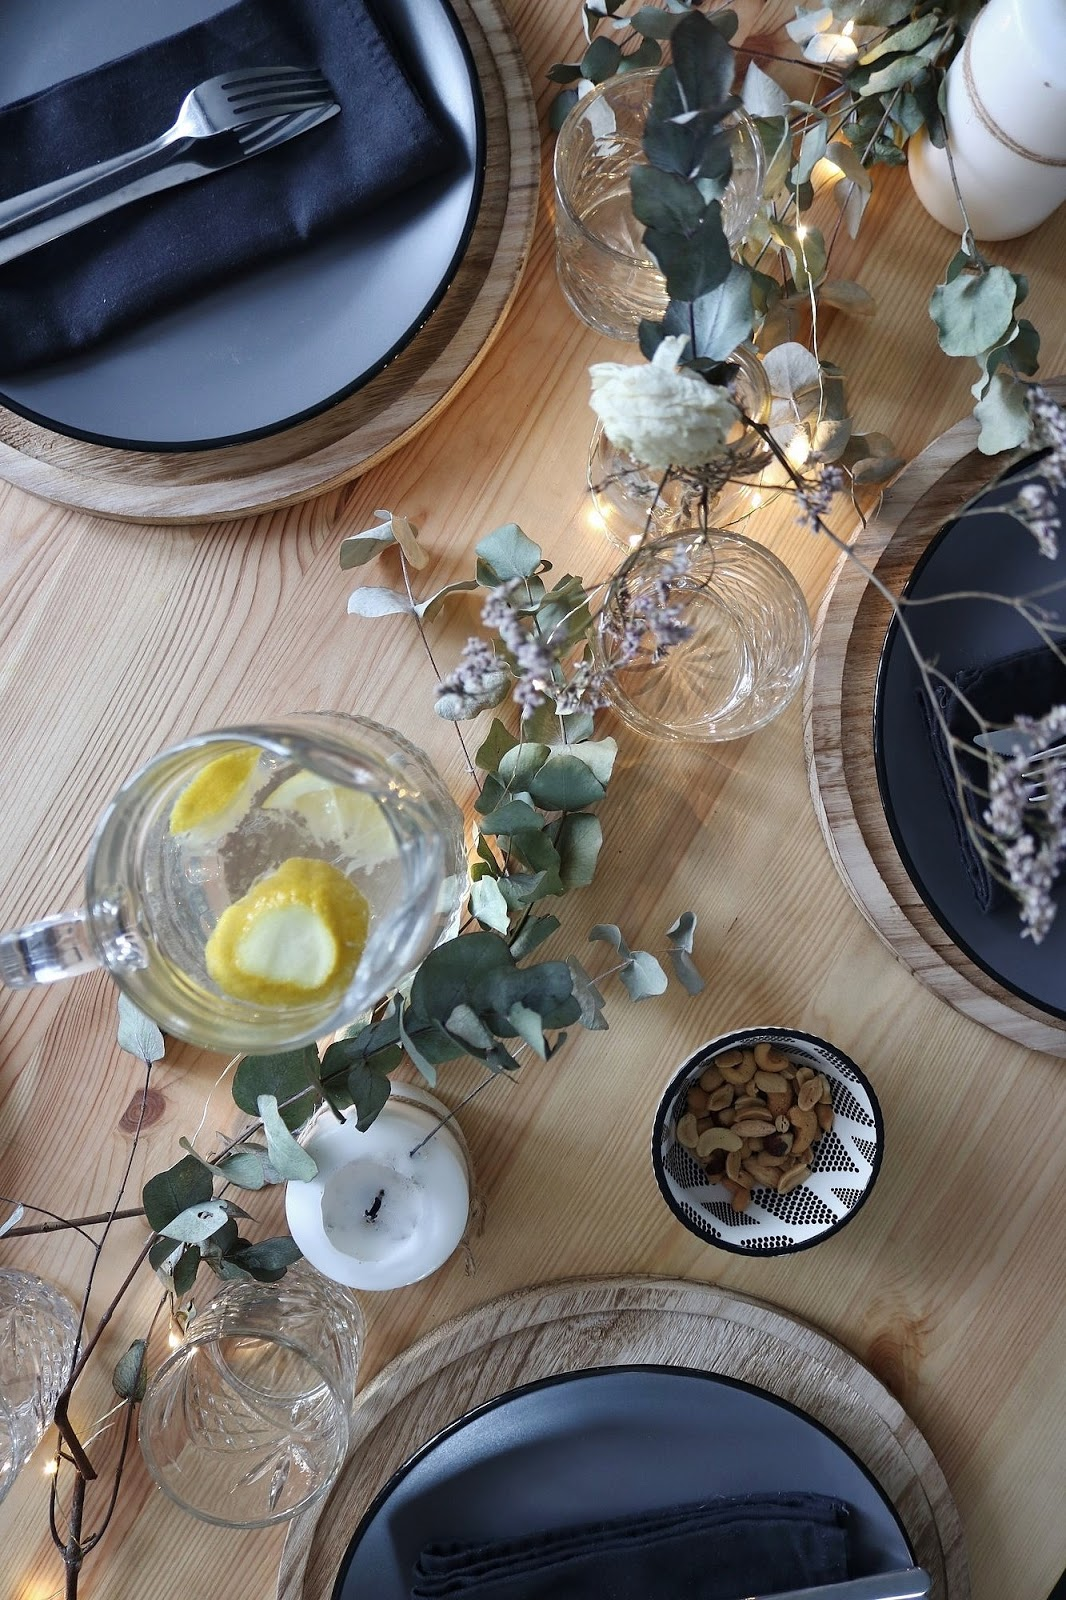 pauline-dress-blog-mode-deco-lifestyle-idee-de-table